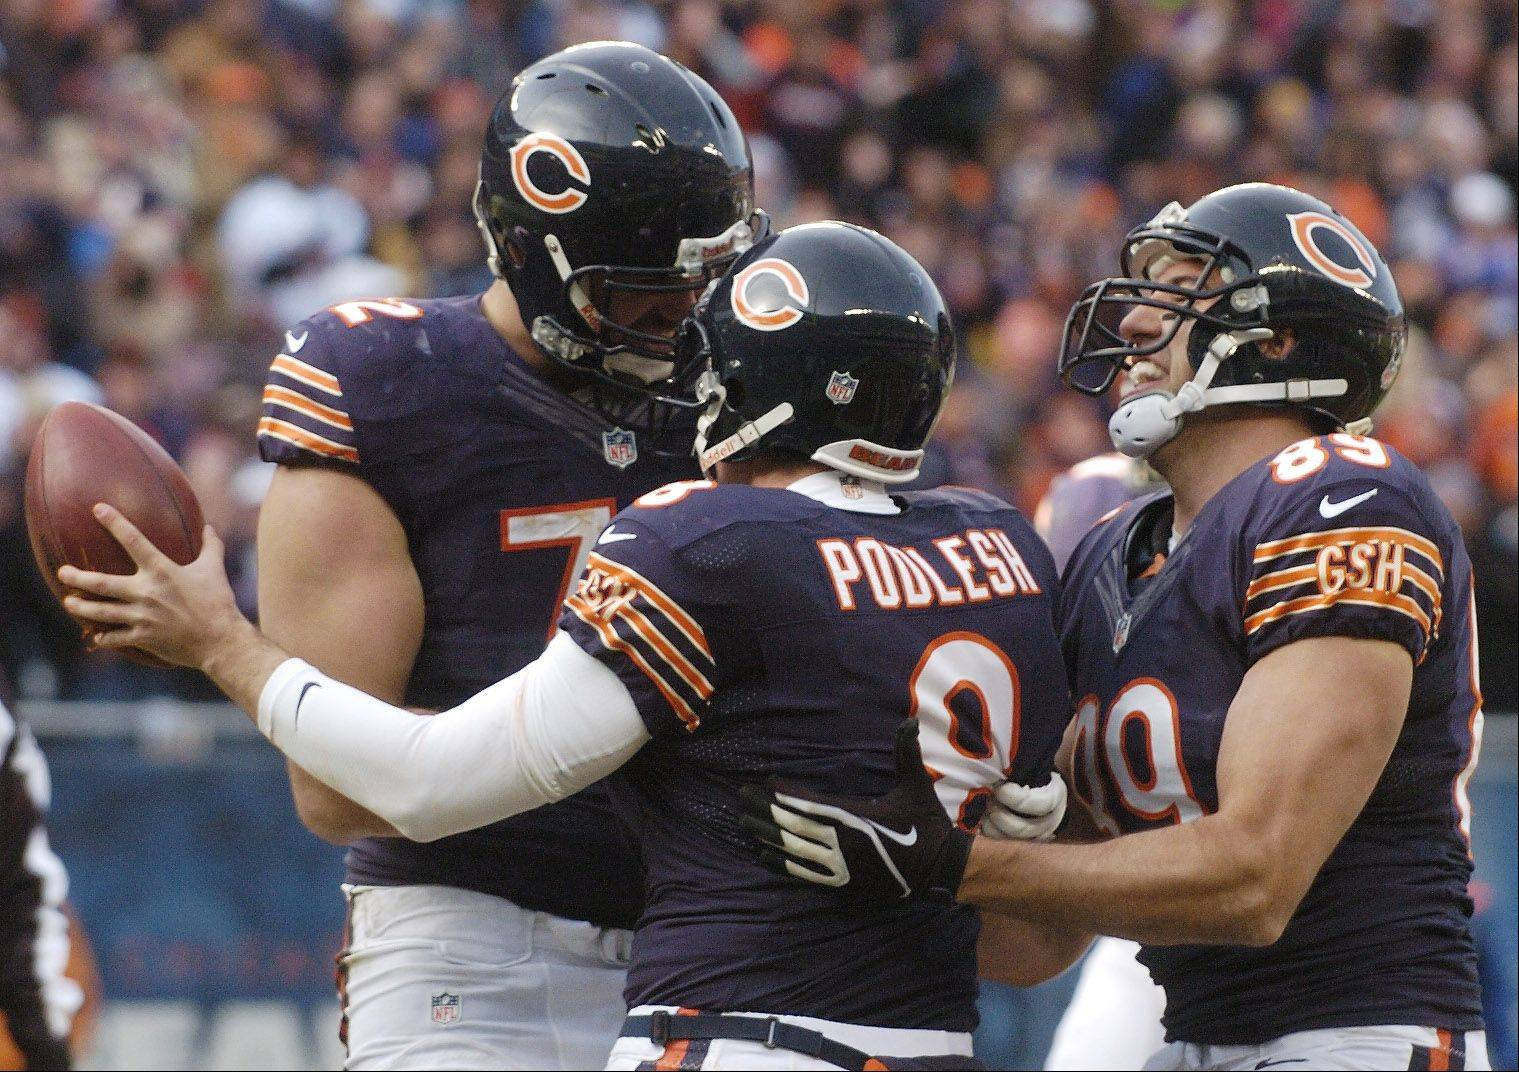 Bears' Podlesh gets a kick out of scoring points